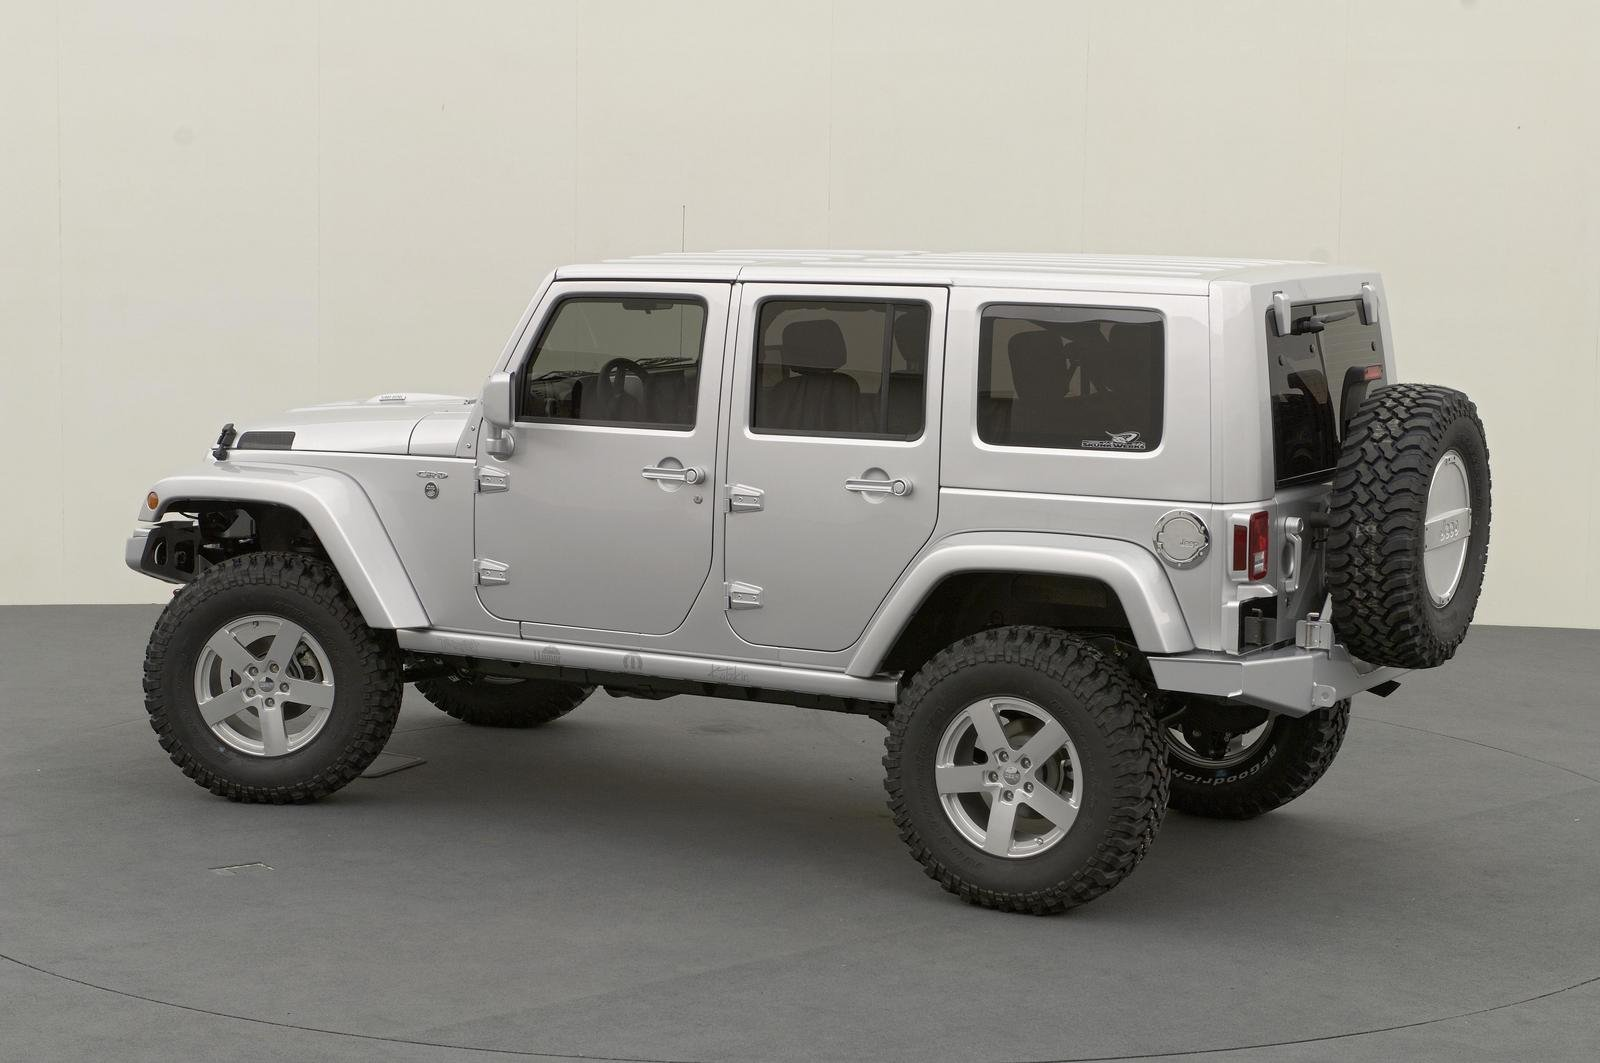 2007 jeep wrangler unlimited rubicon picture 109529 car review. Cars Review. Best American Auto & Cars Review